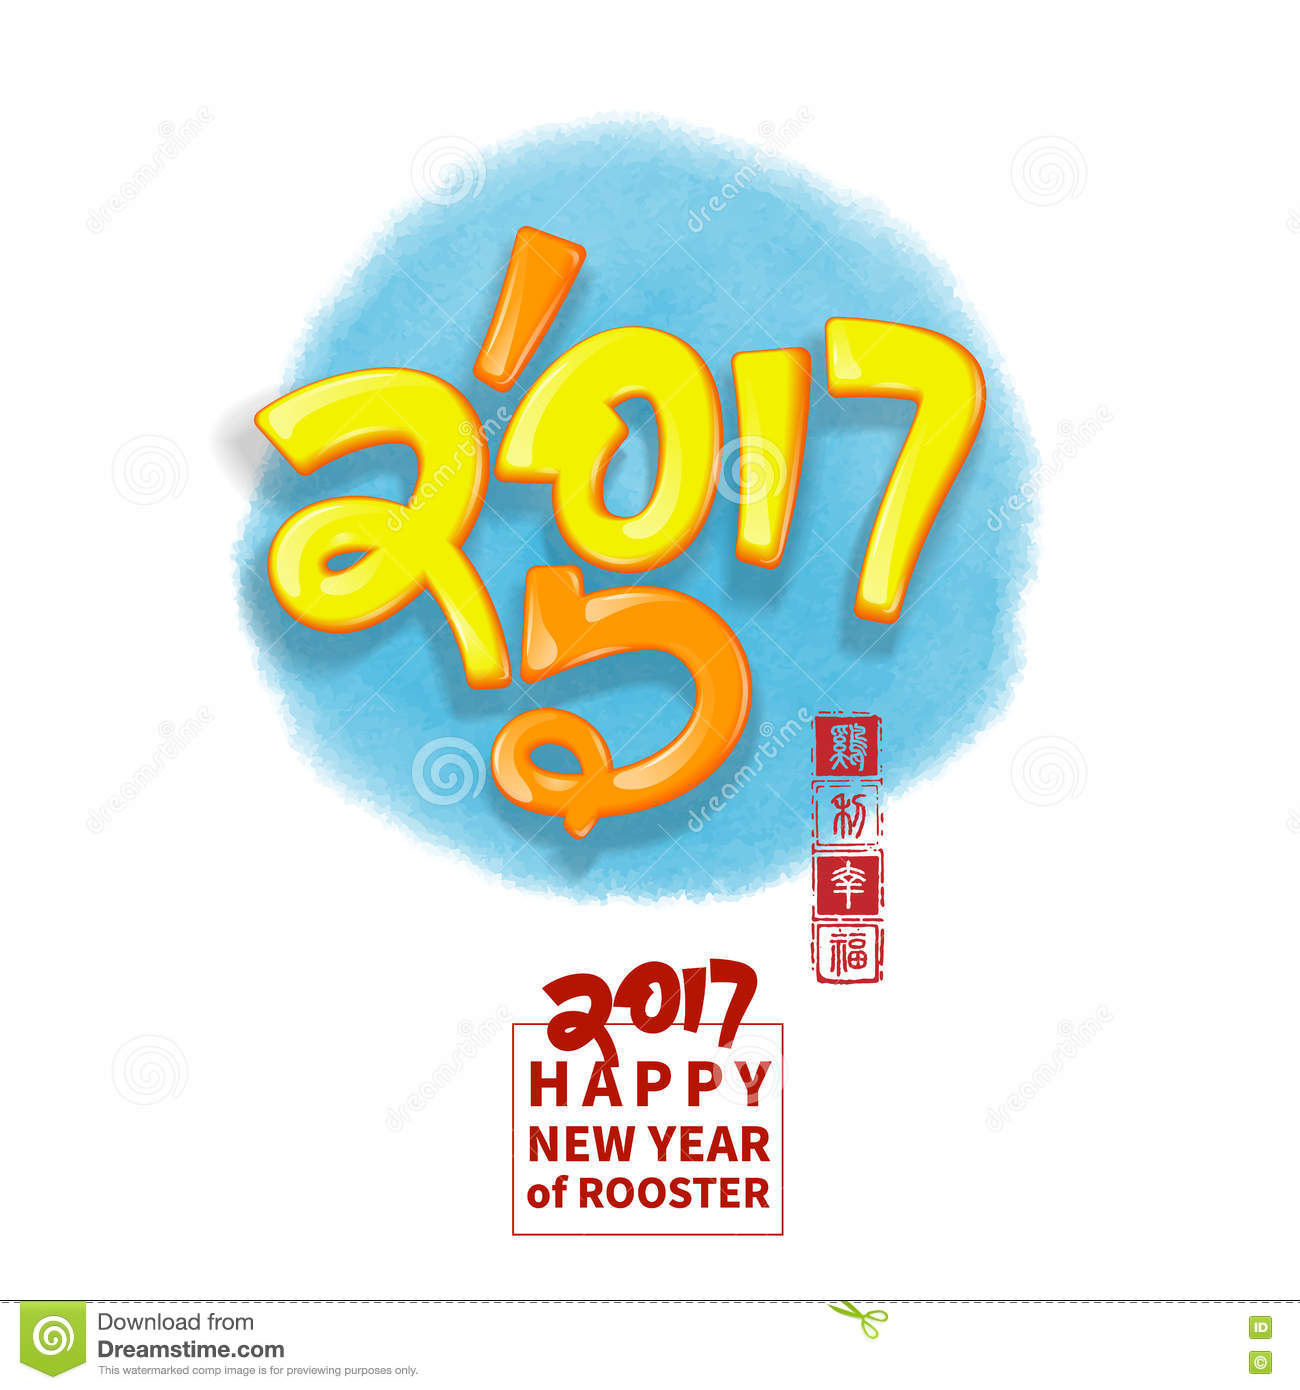 how to write happy new year in chinese characters